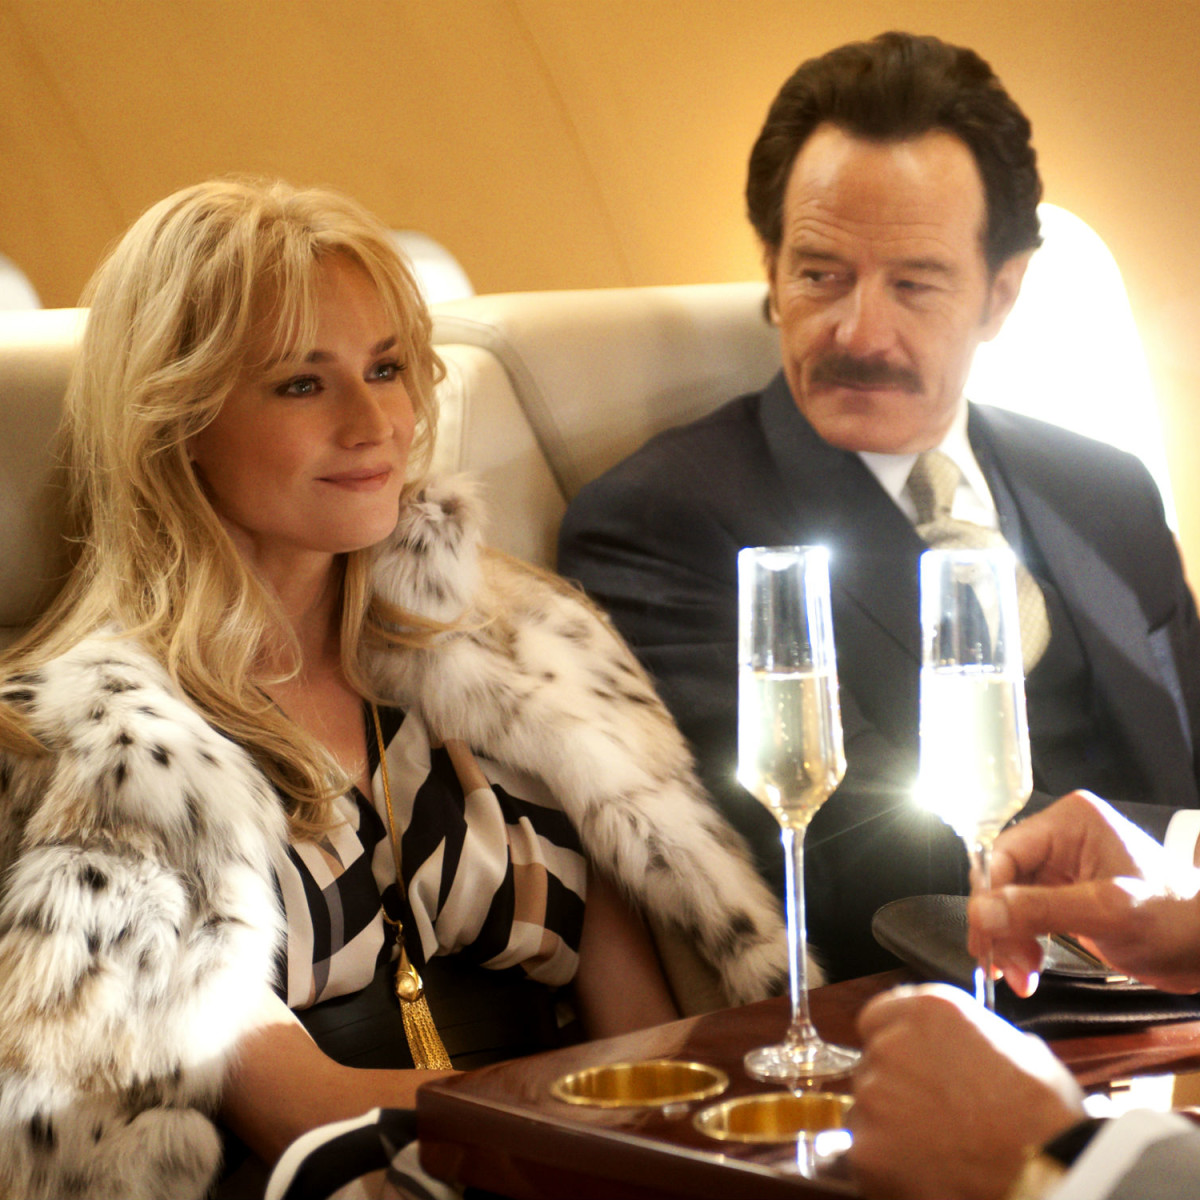 Diane Kruger and Bryan Cranston in The Infiltrator